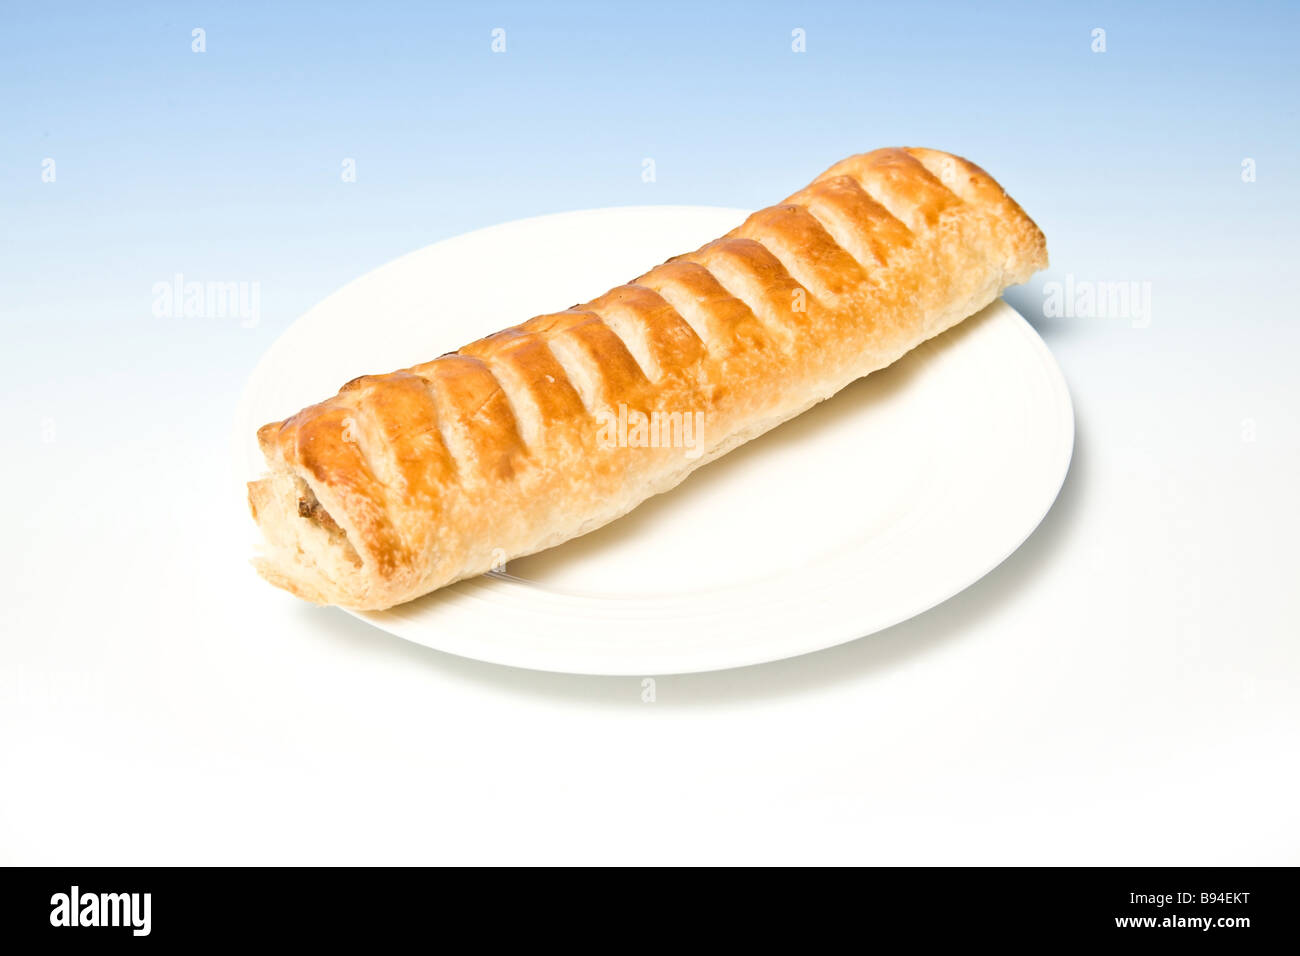 Jumbo Sausage roll on a white plate - Stock Image